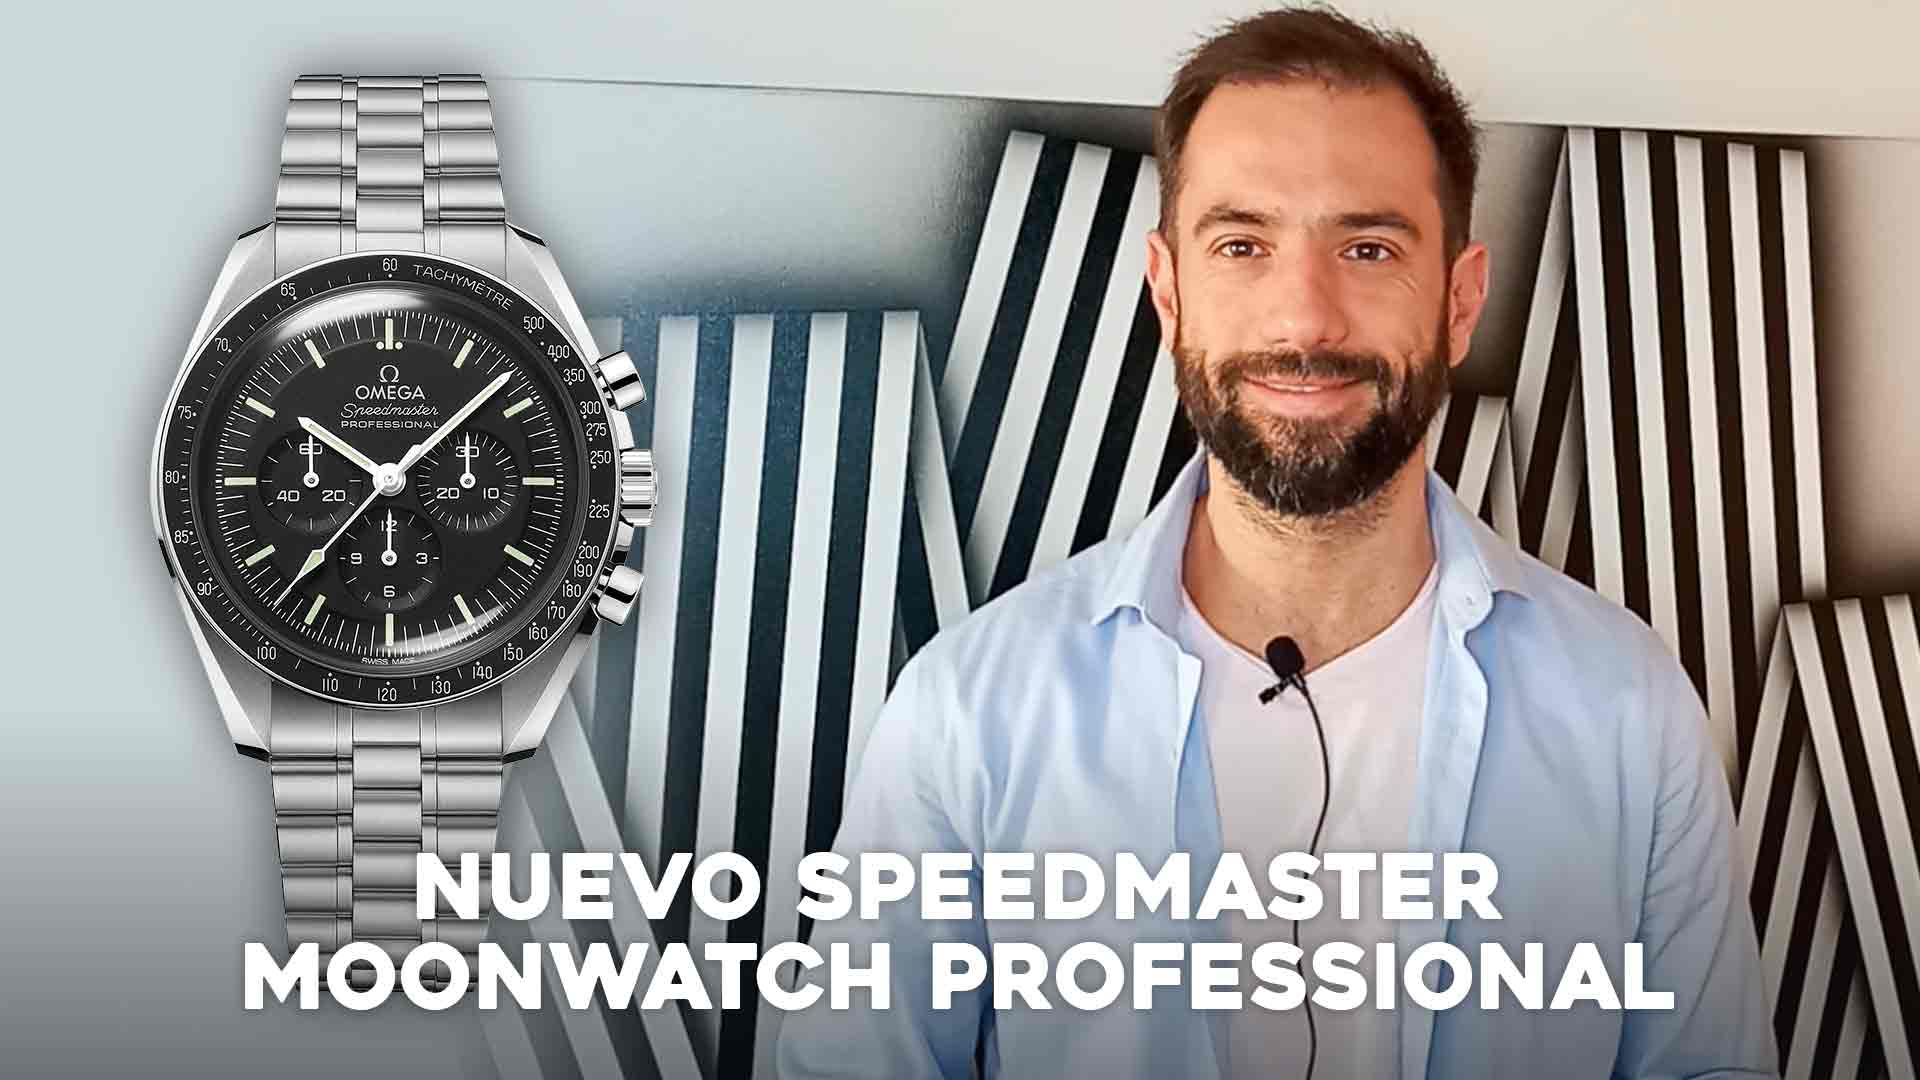 Nuevo Speedmaster Moonwatch Professional